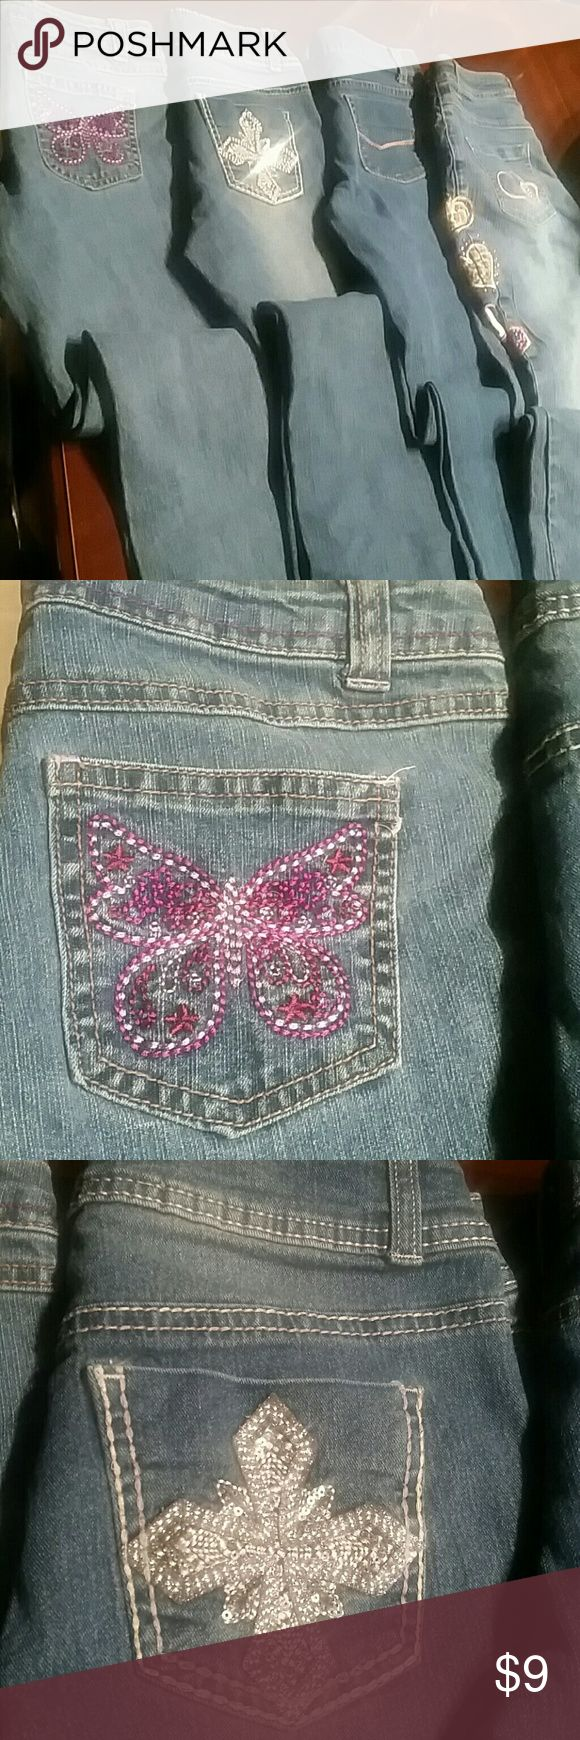 "Blue Jeans Teens size 12 Bundle Lot 4 jeans 3 each Faded Glory Jeans and 1 each Candy Coast Jean. All size 12 (Teens)  PLUS   "" FREE GIFT ""  INCLUDED !!!! Faded Glory & Candy Coast Bottoms Jeans"